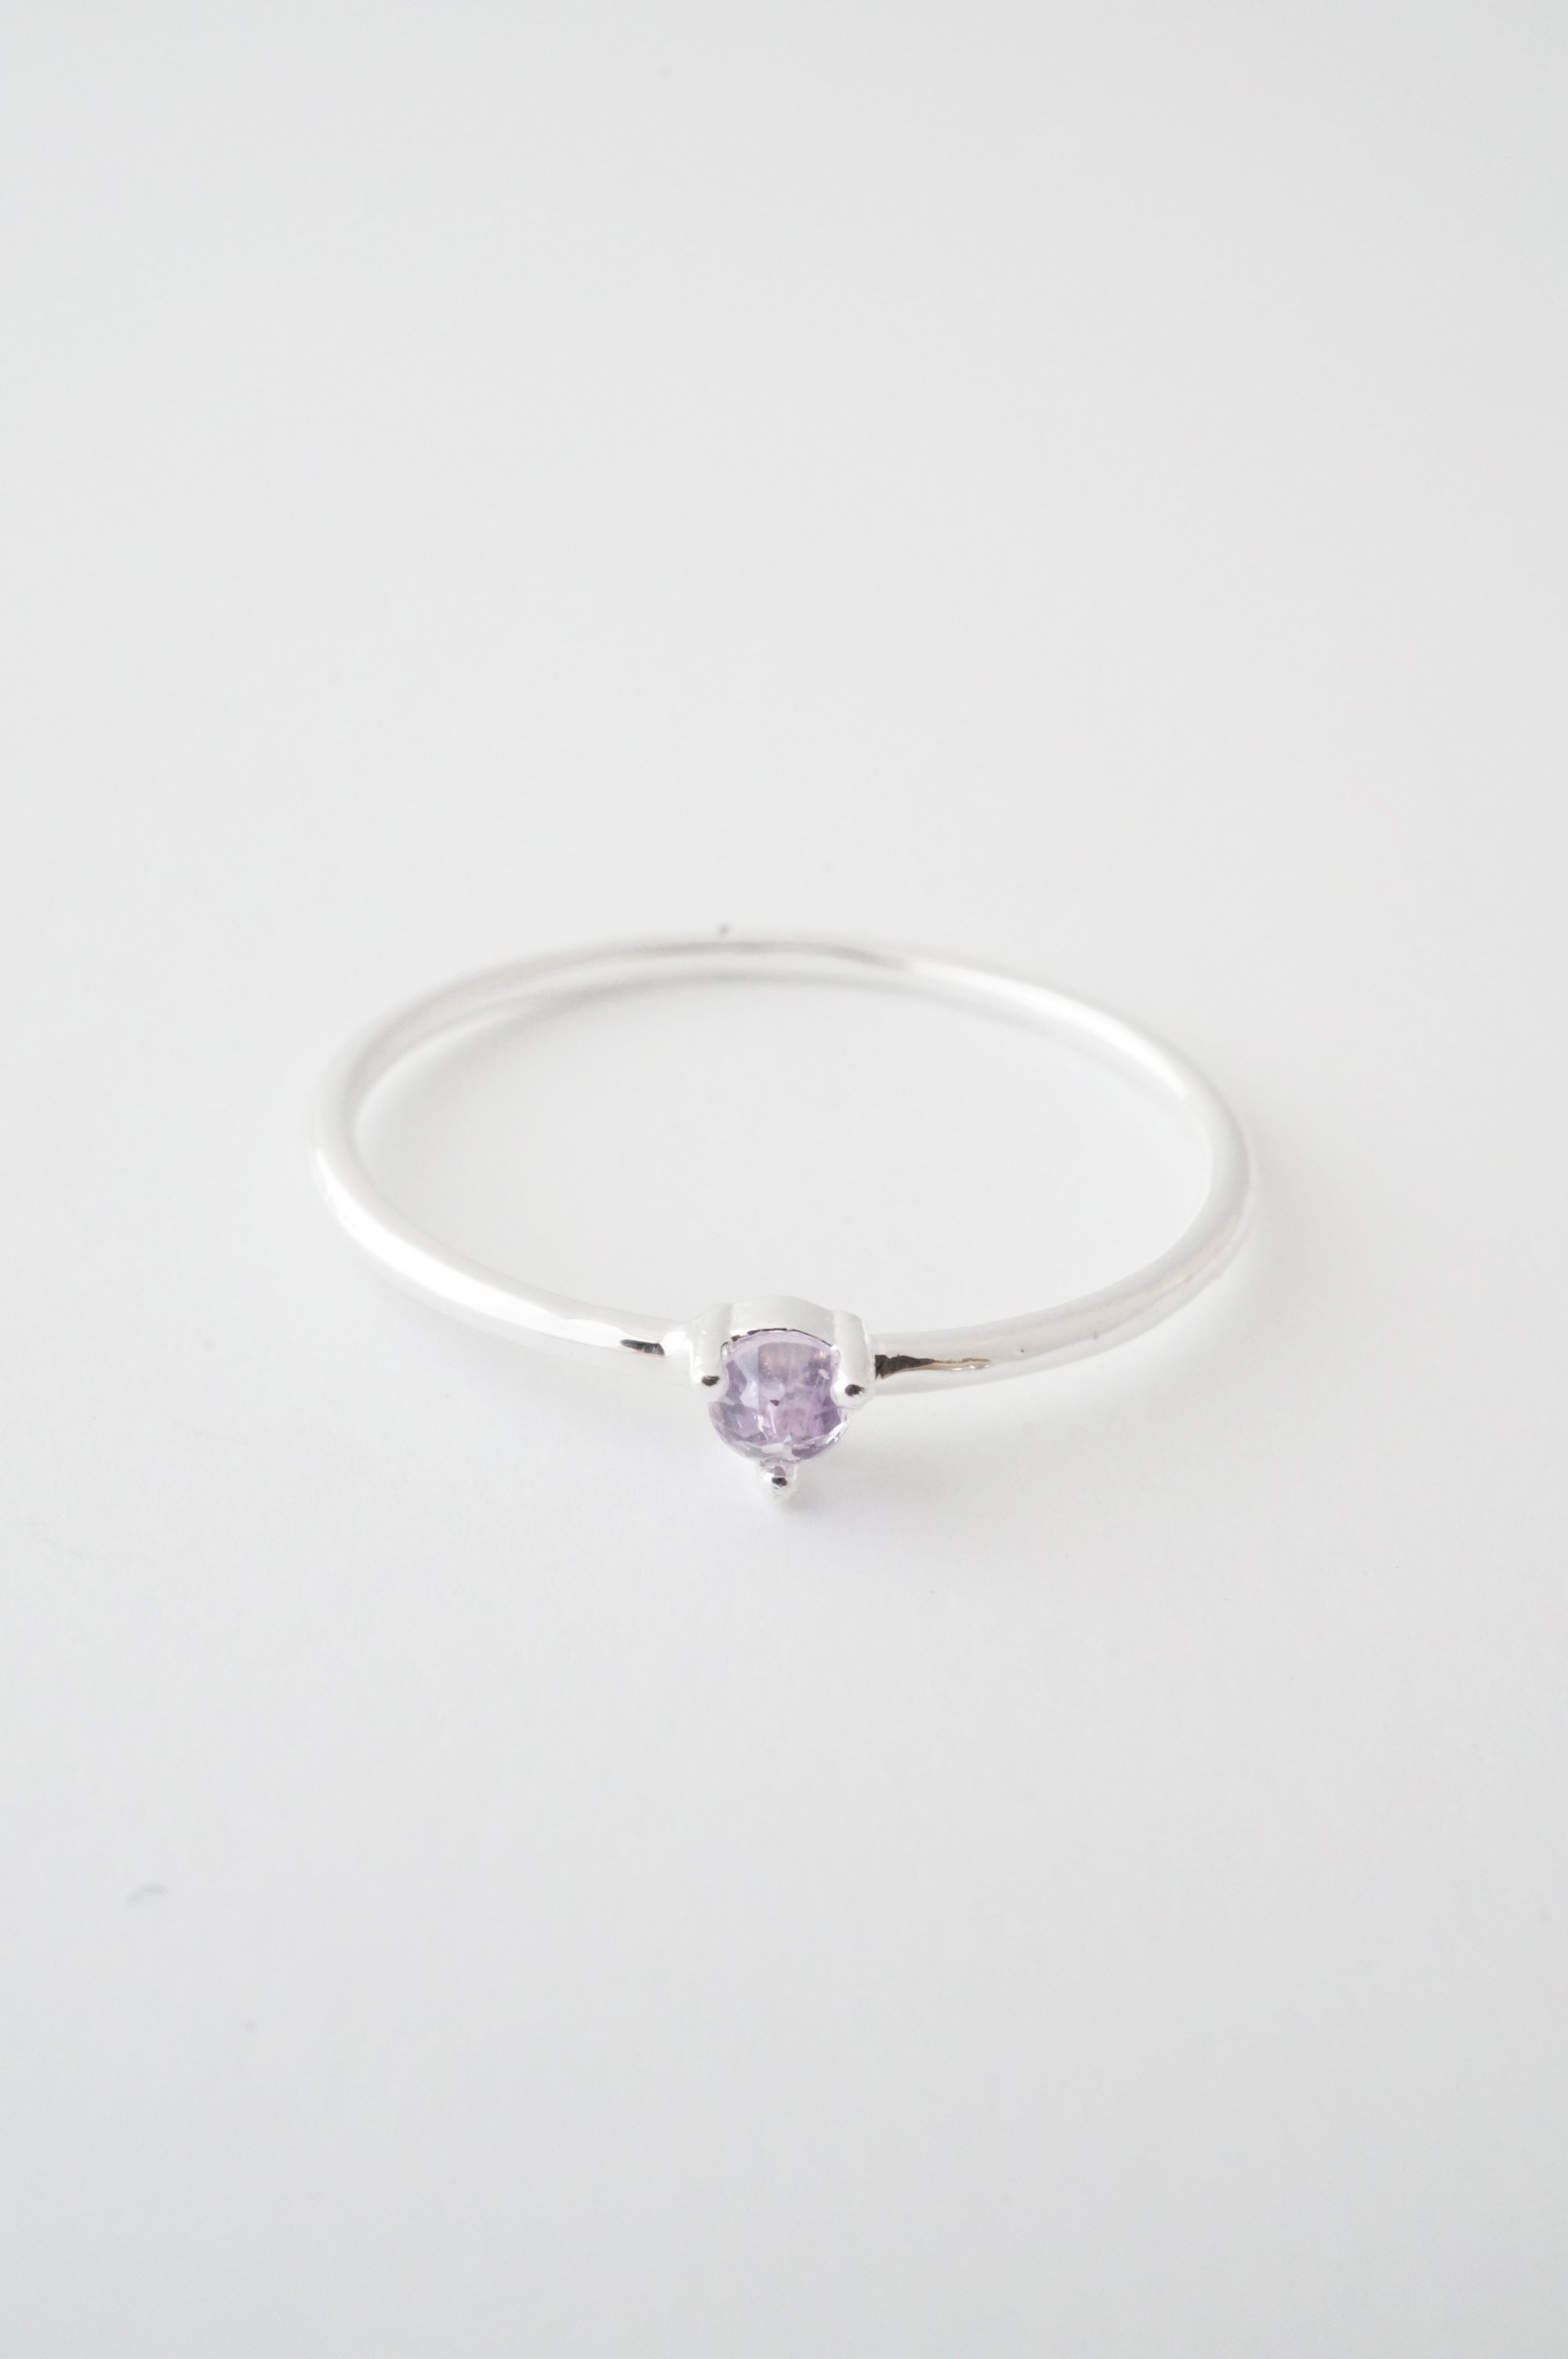 rings c lexyair gemstones jewelry birthstone n i amethyst collection february of